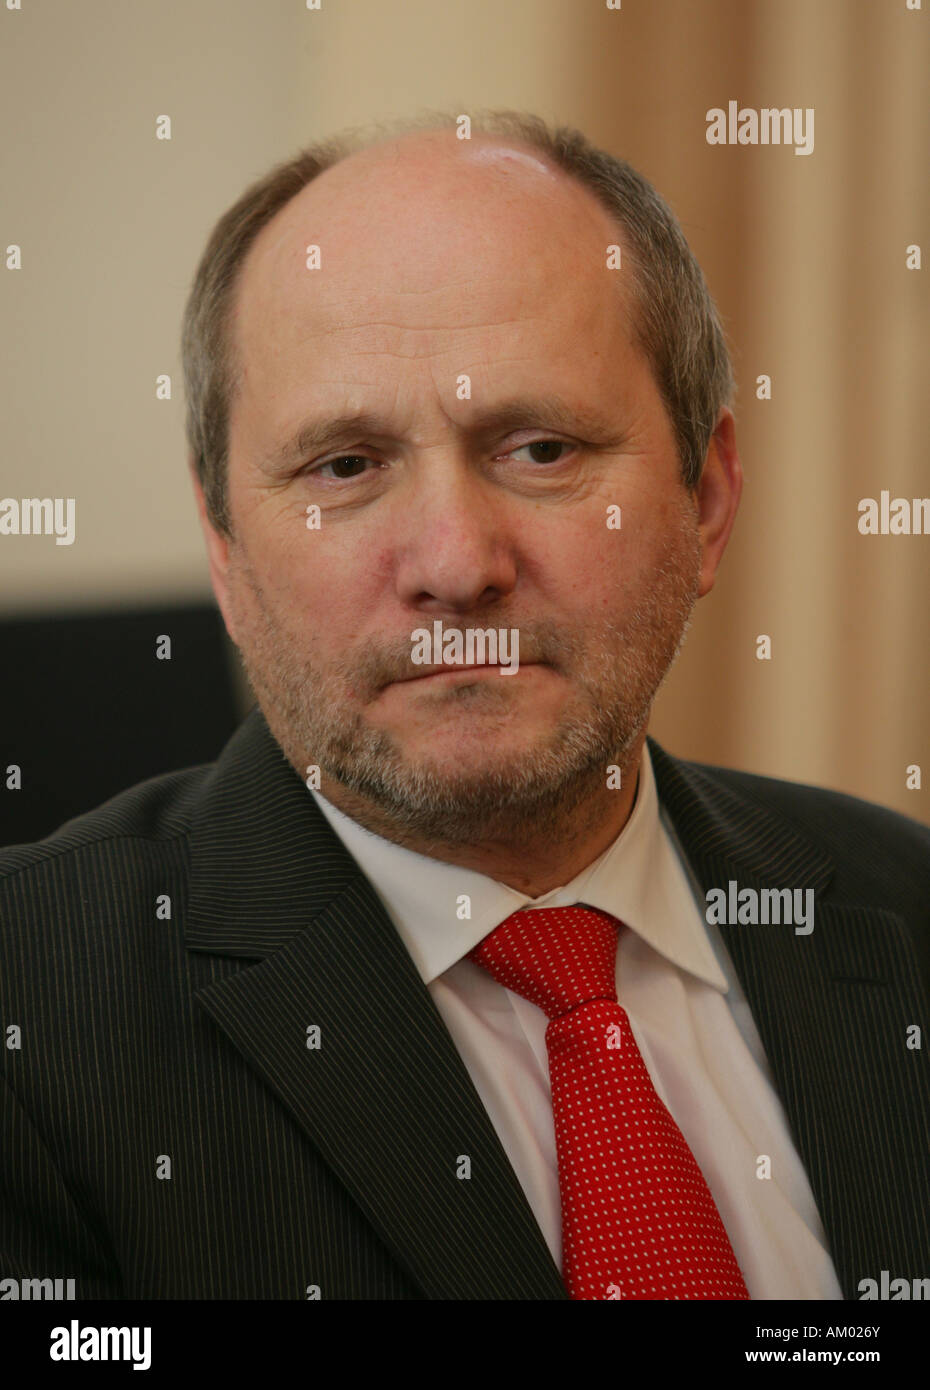 Dr. Ingolf Deubel, minister of finance in rhineland-palatinate, germany - Stock Image